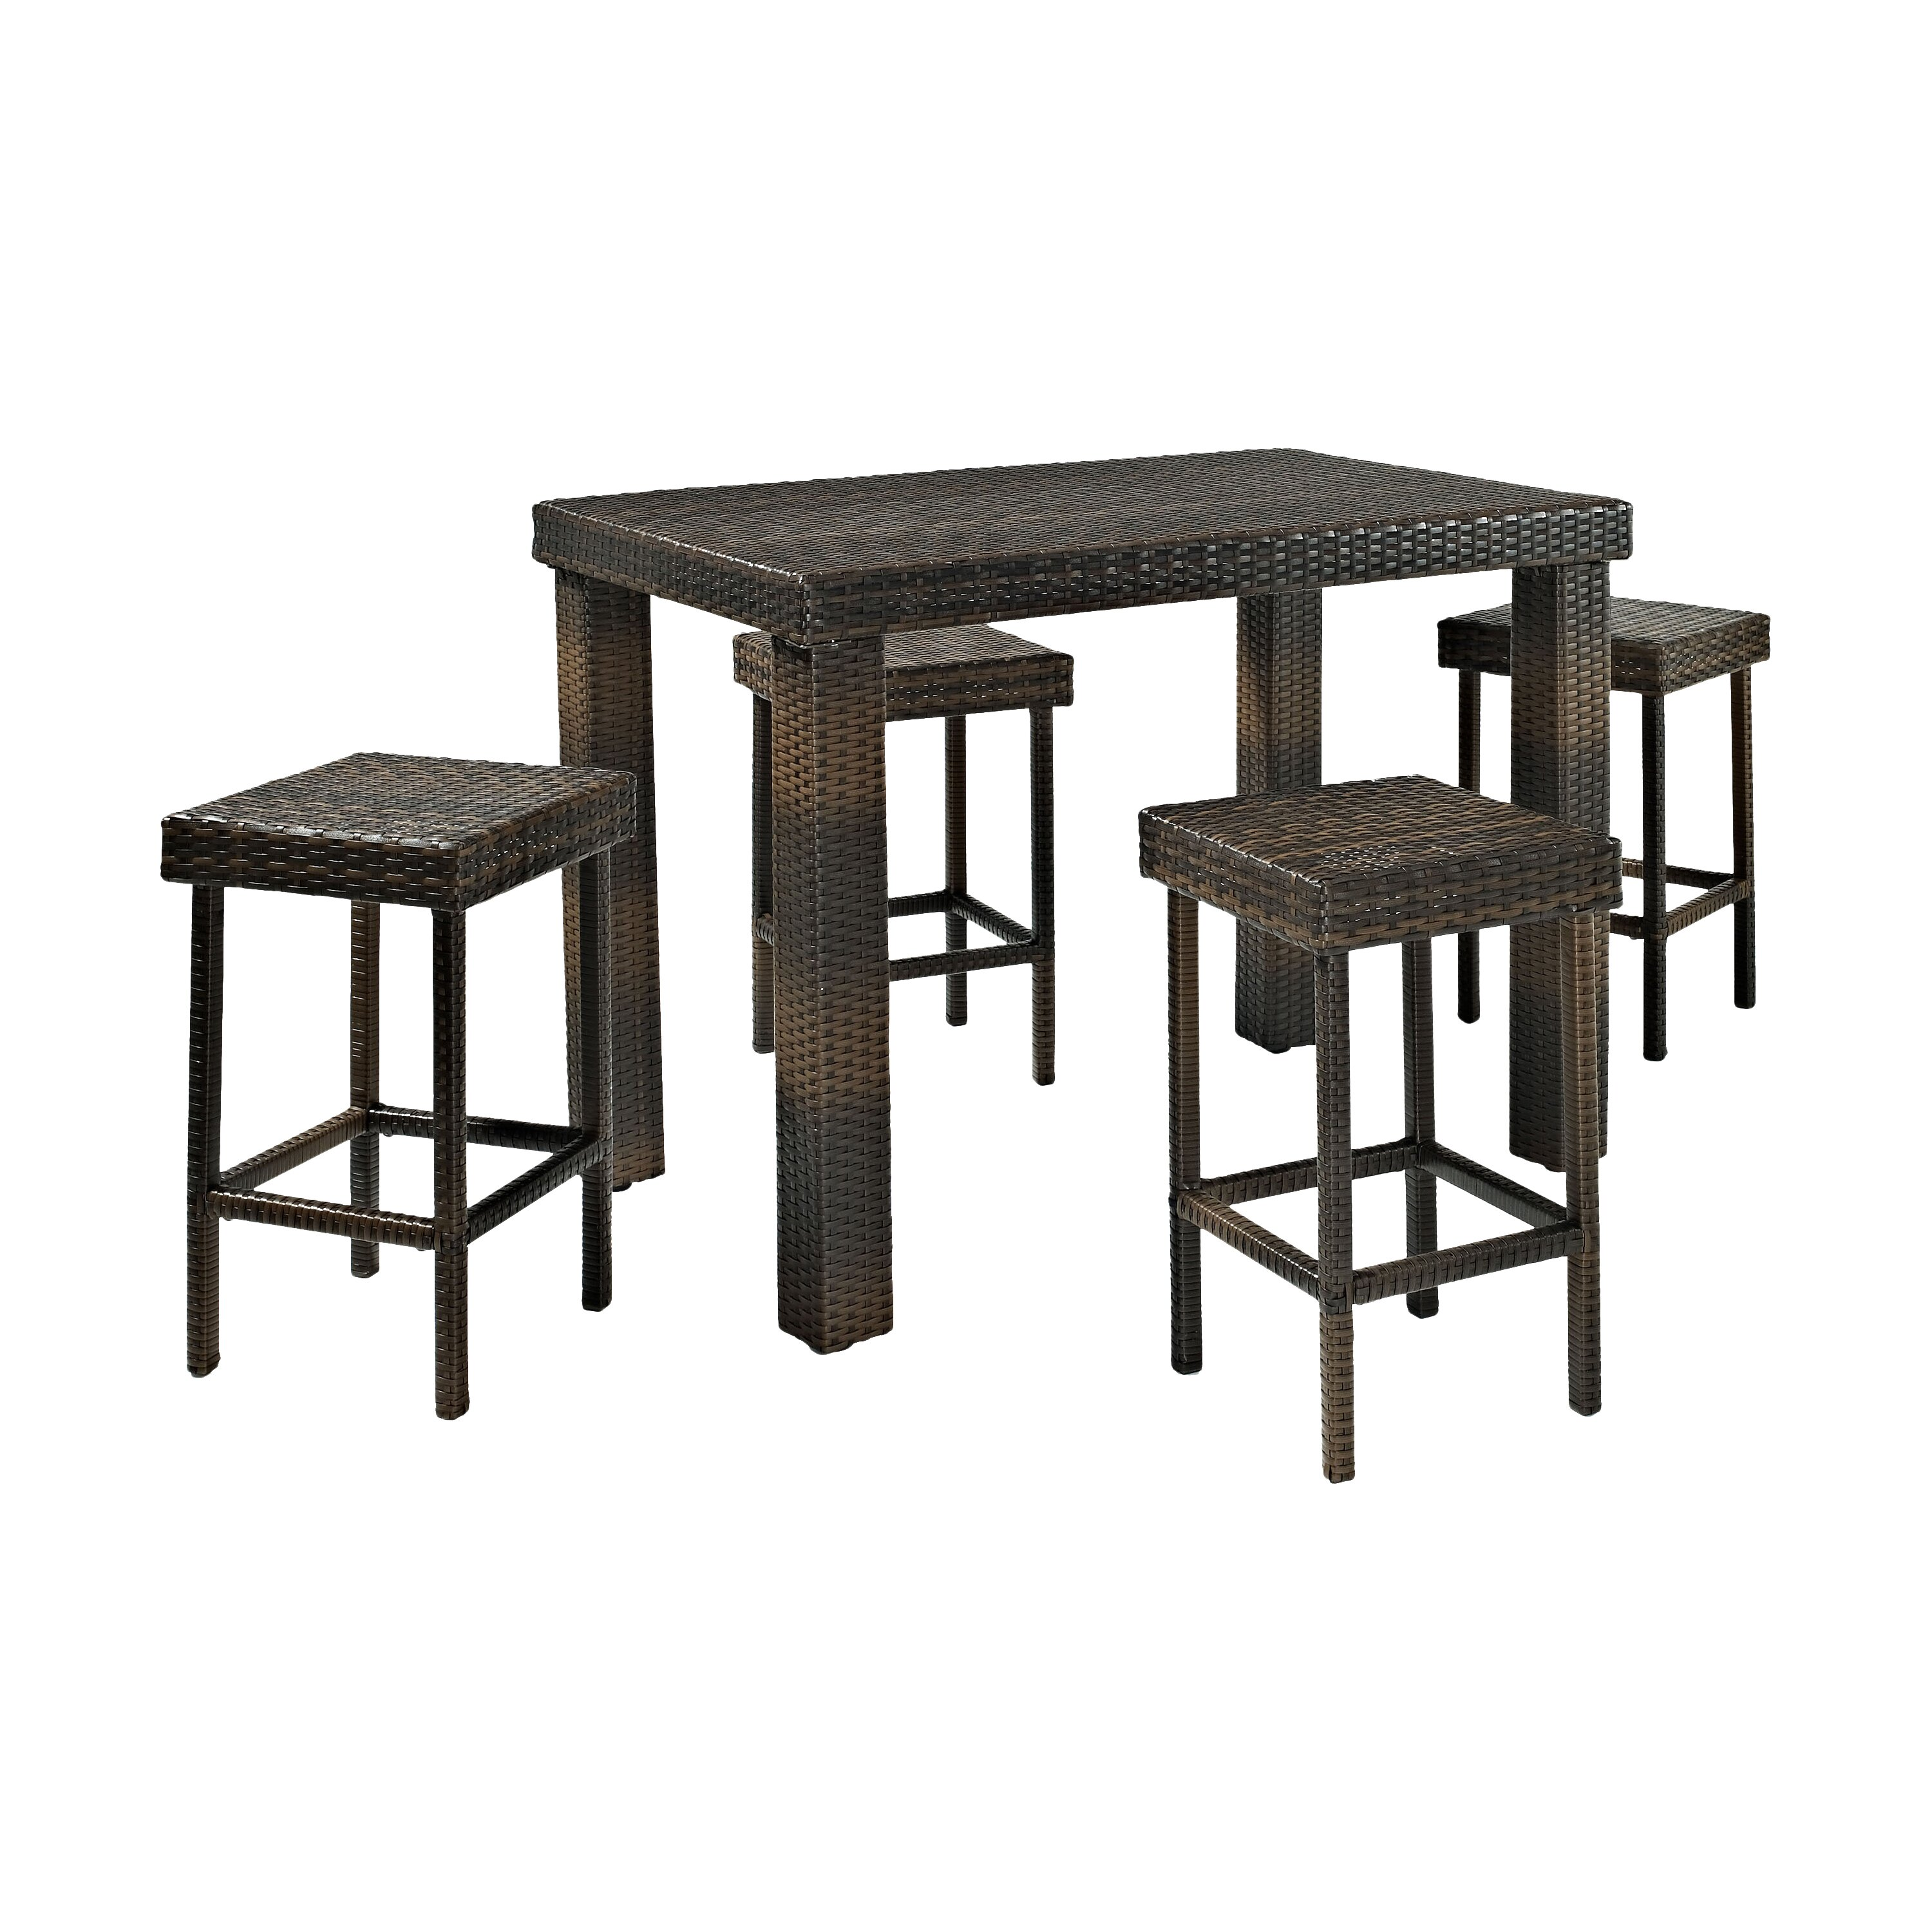 Brayden Studio Crosson 5 Piece Bar Set Reviews Wayfair